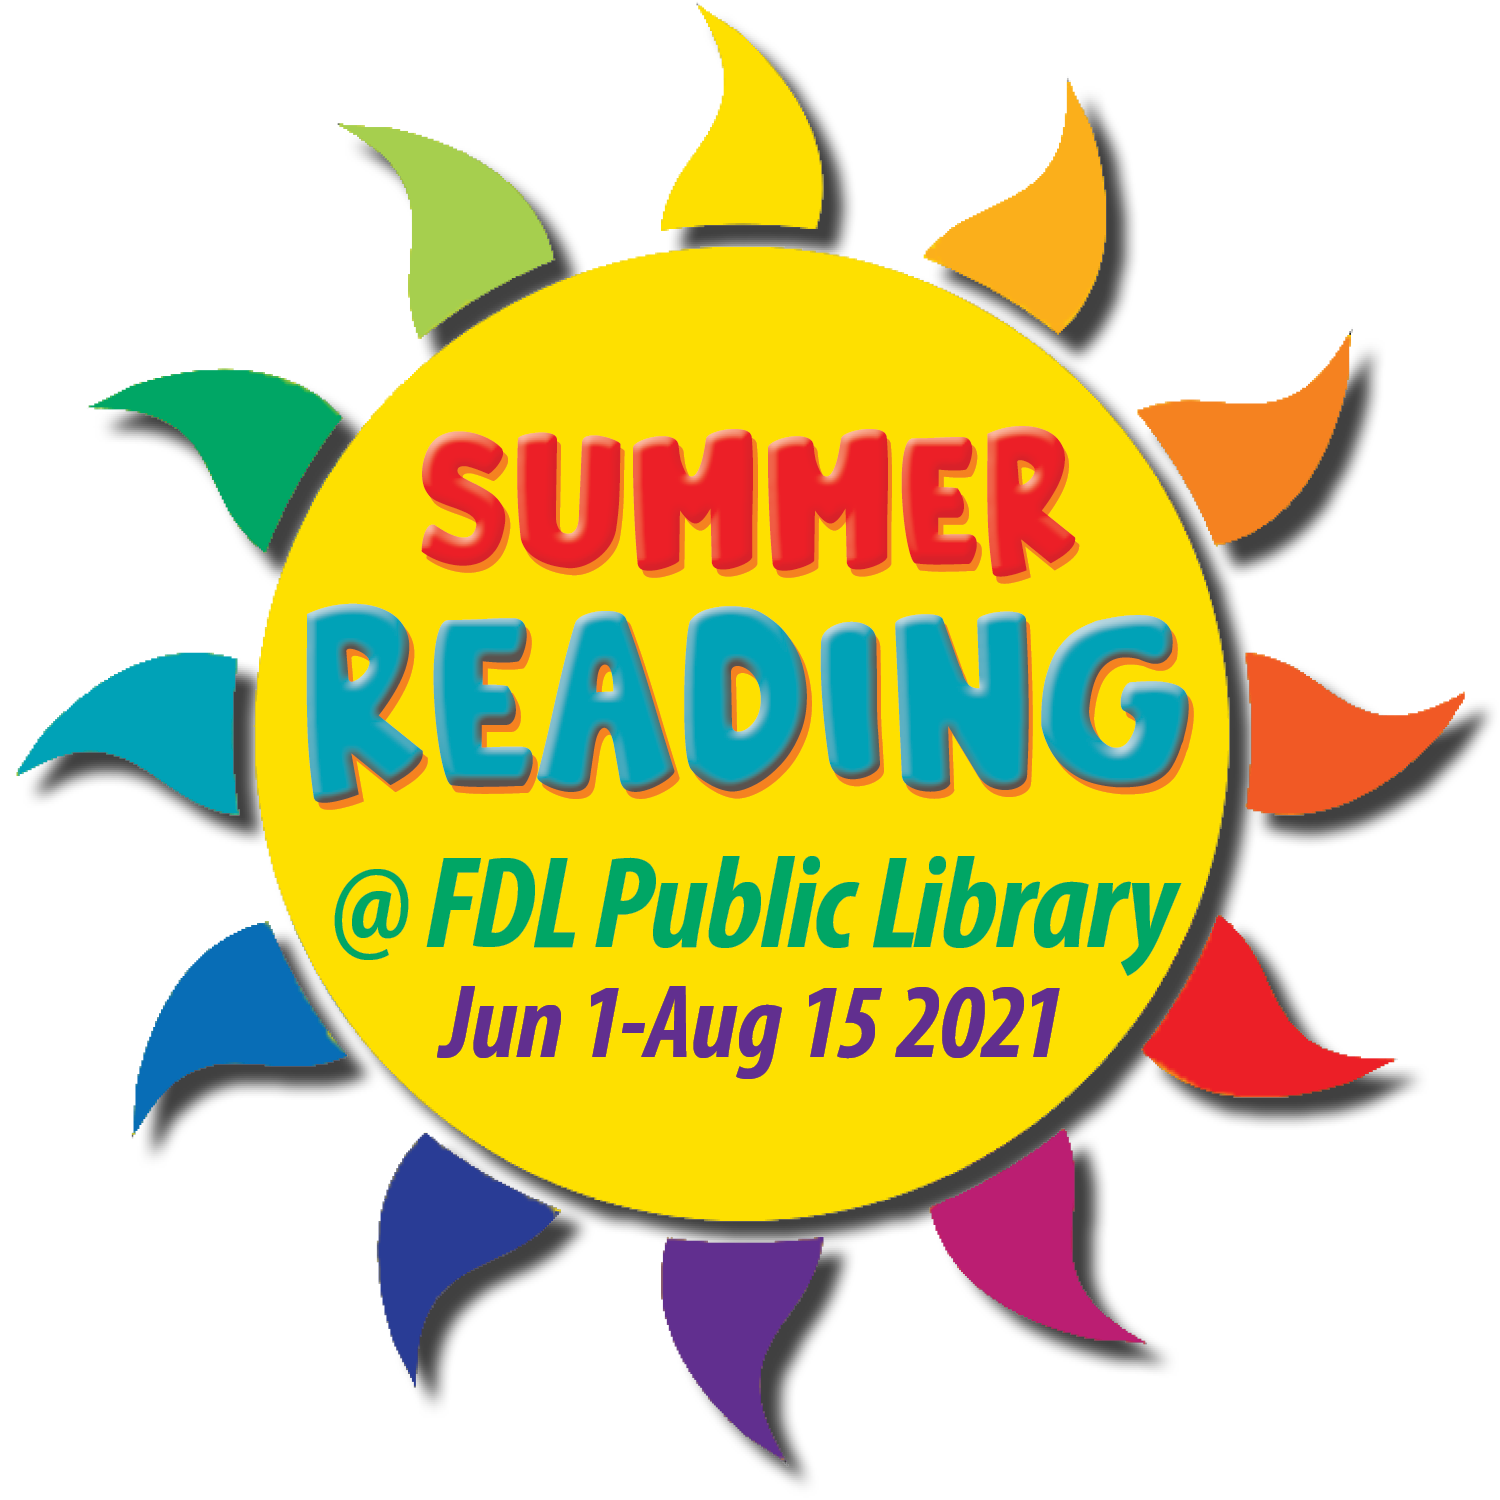 Summer Reading at FDLPL starts in just a few short weeks